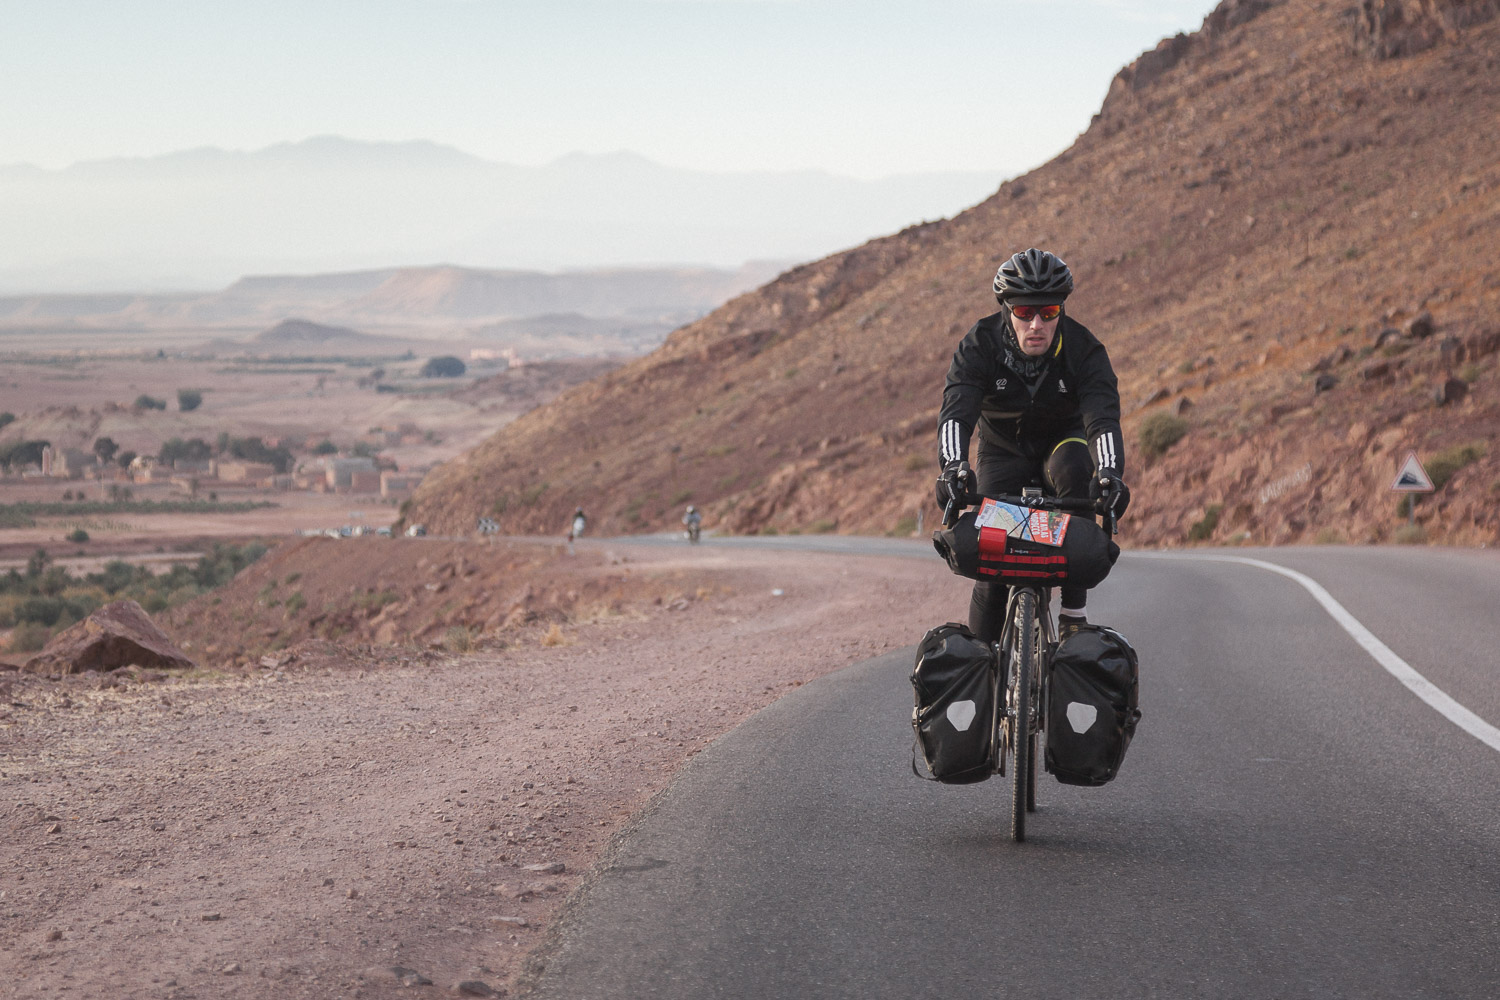 8bar bikes adventures morocco gravel 20151211 0093 bearbeitet - 8bar Adventures - Morocco - High Atlas - Part 2/2